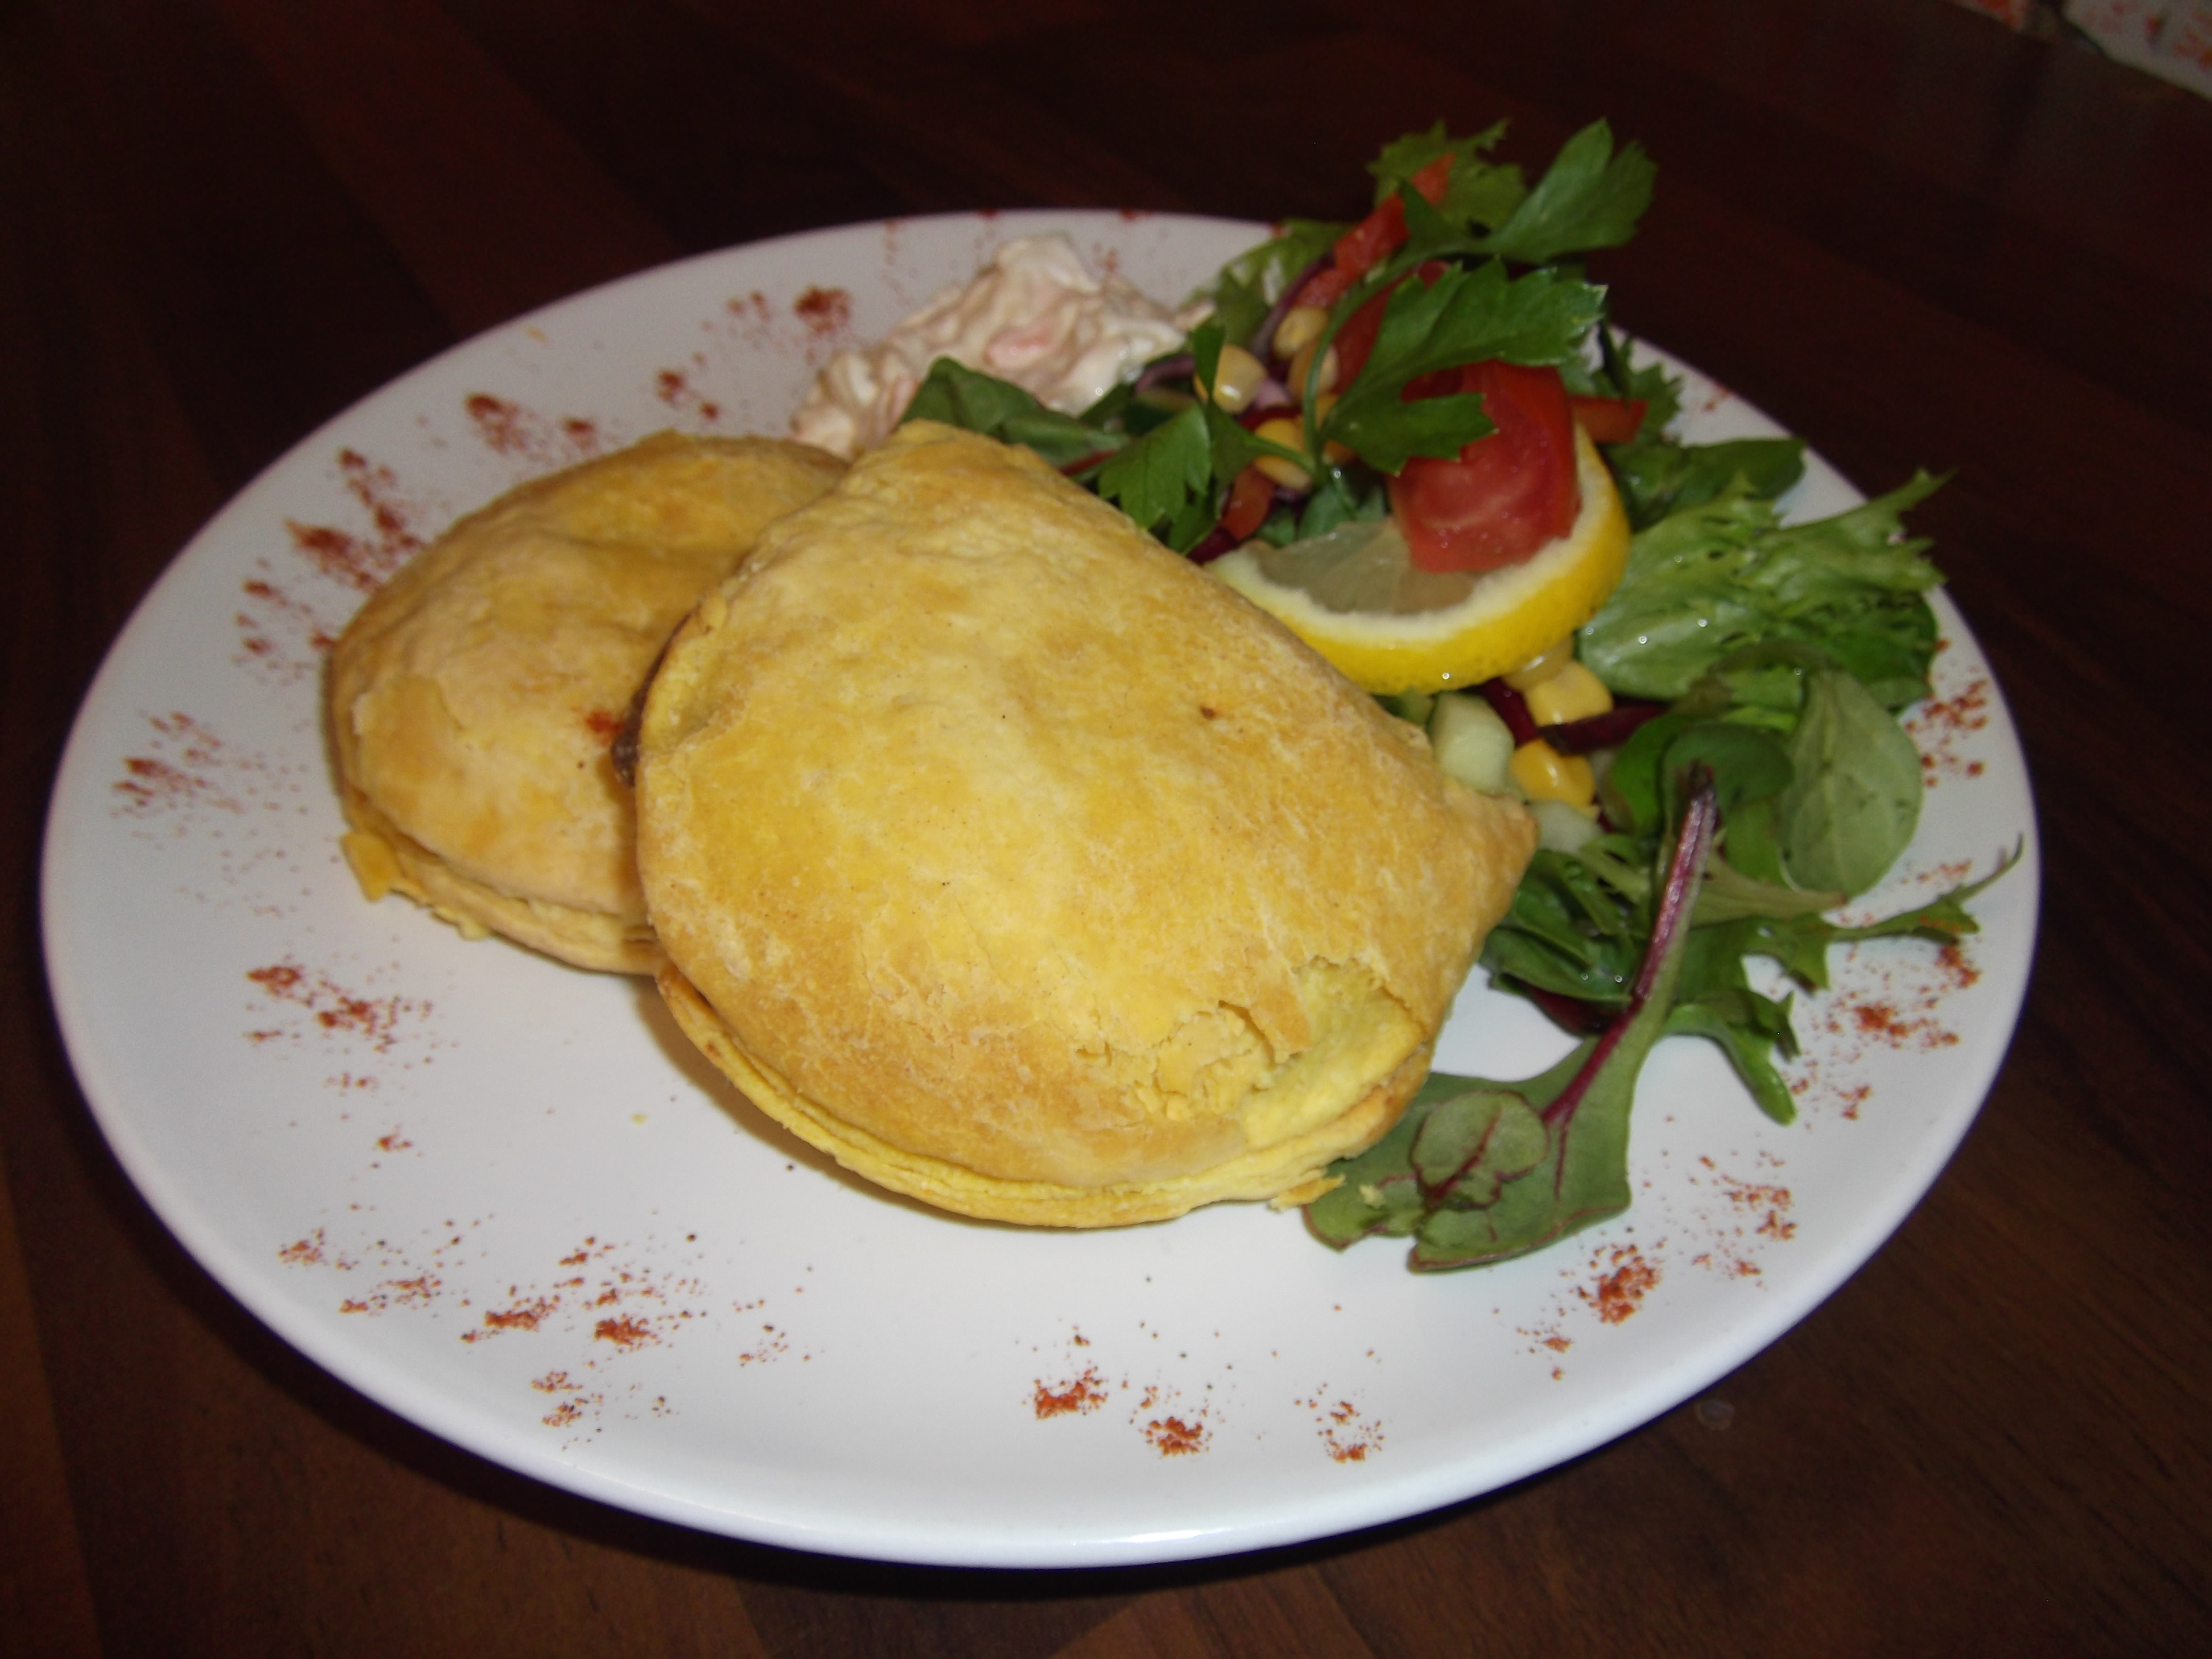 curry pattie